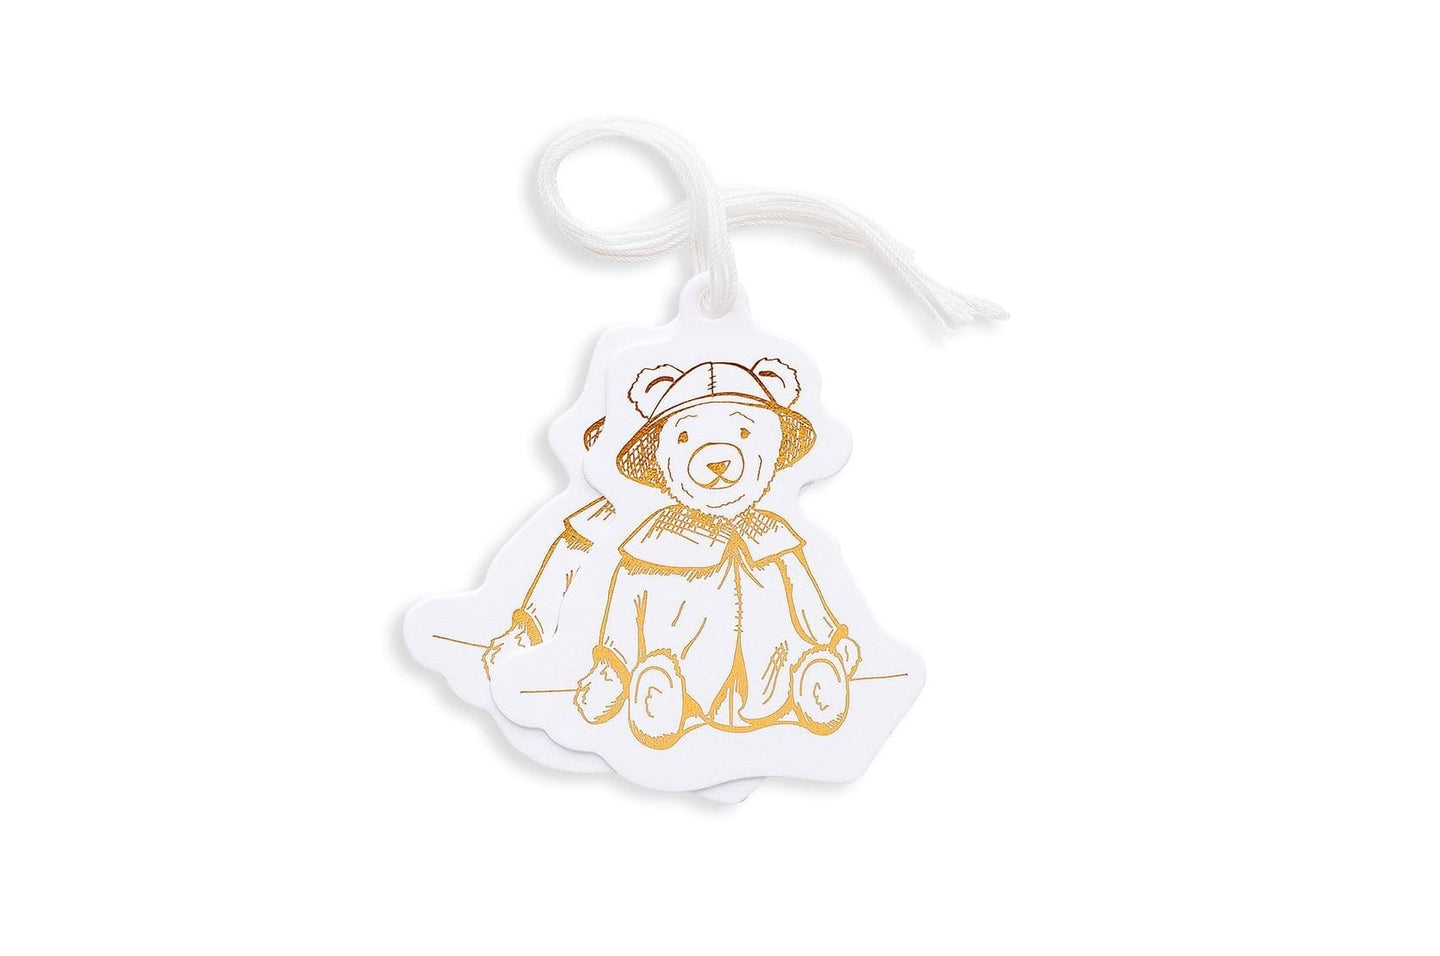 Toy Teddy Set Die Cut Gift Tags / Neighborhood Goods